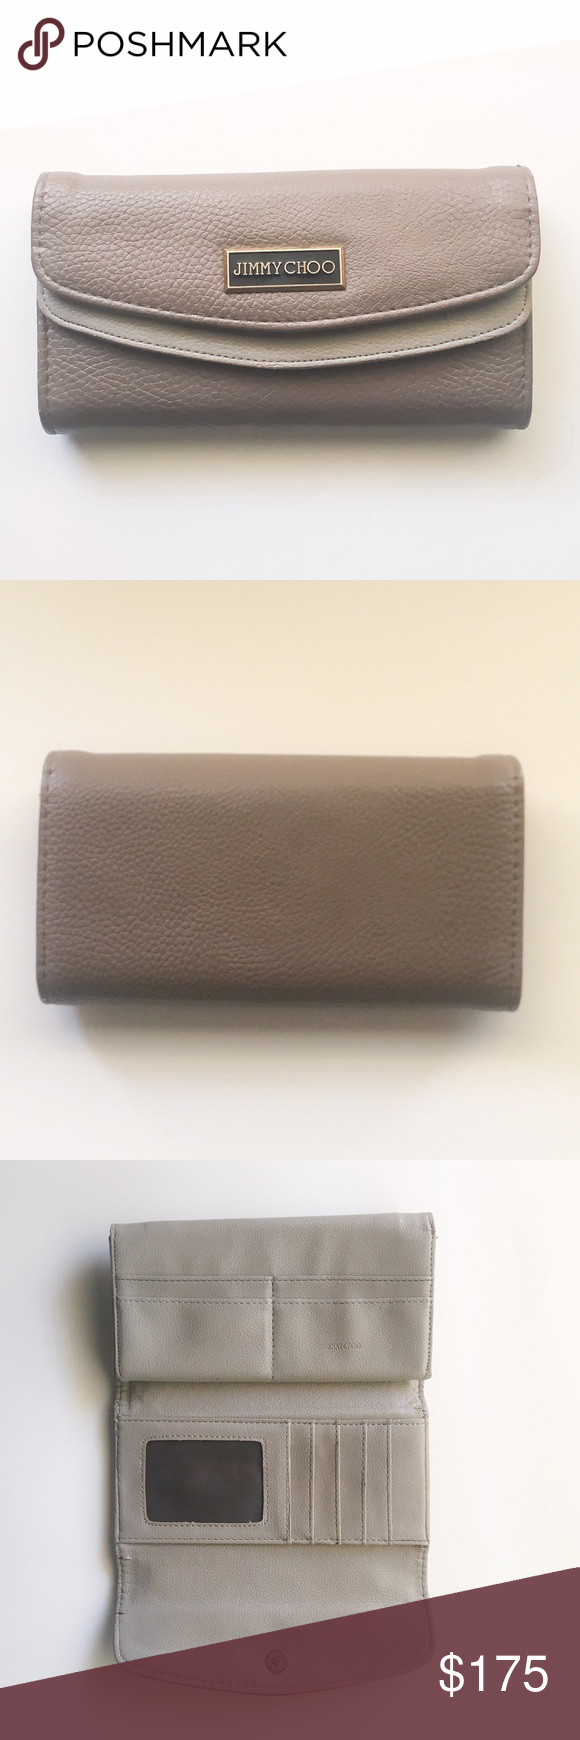 ‼️FLASH SALE‼️Jimmy Choo Wallet Really pretty Gray and Mauve Jimmy Choo Wallet. In great condition but does have some wear in change purse area as shown in the picture. Has a card slot section as well as zipper section that is big enough for change, lipstick, and other trinkets! Jimmy Choo Bags Wallets